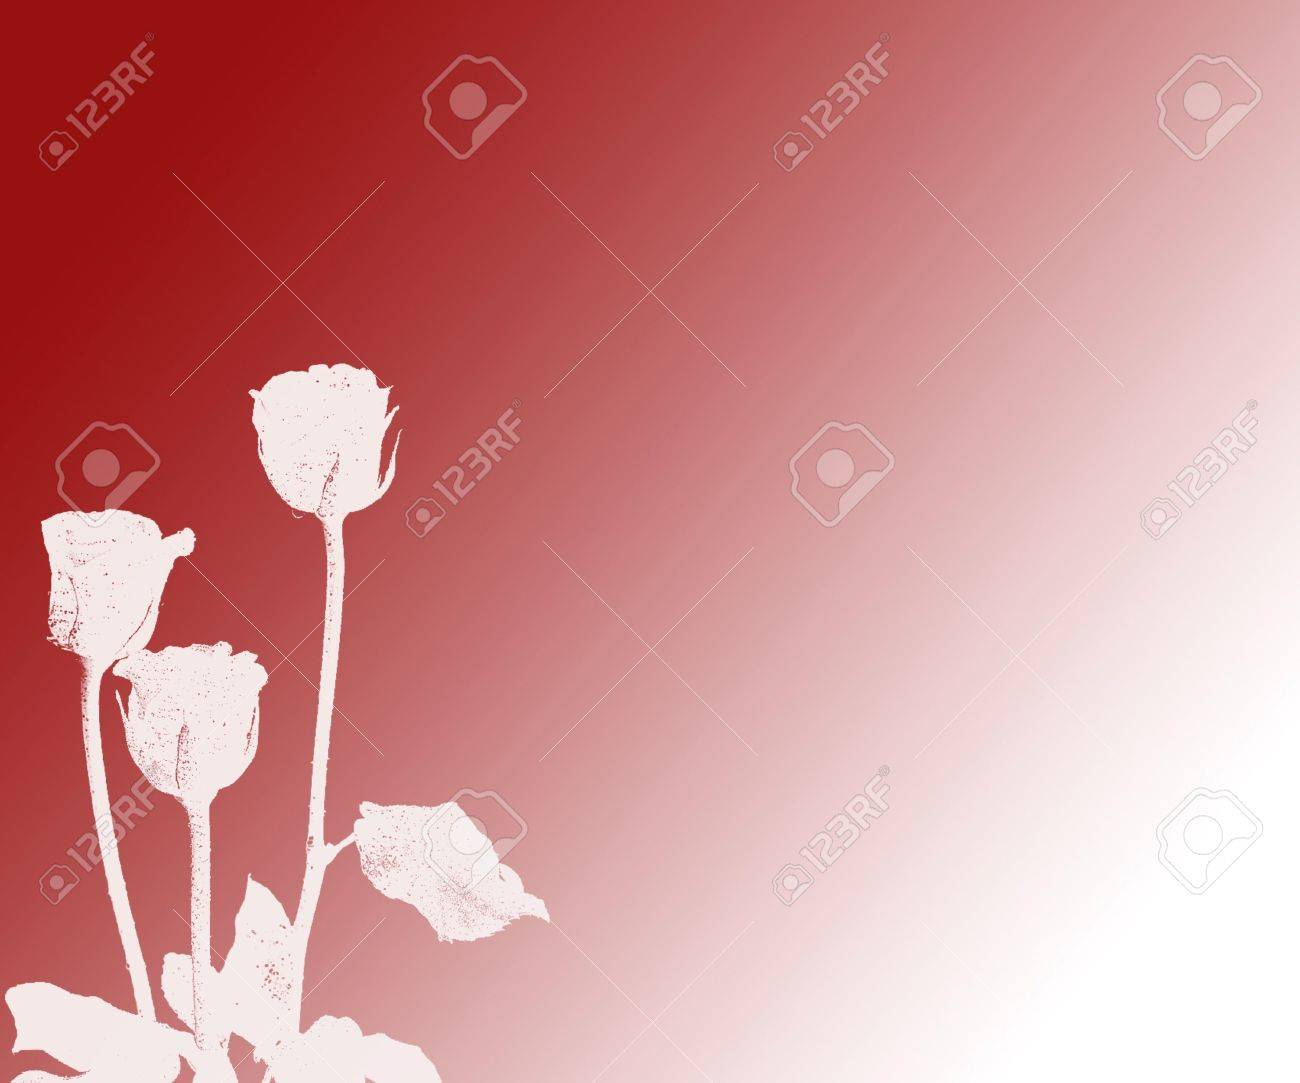 Grunge Silhouette Floral Background With Copy Space Stock Photo - 344801